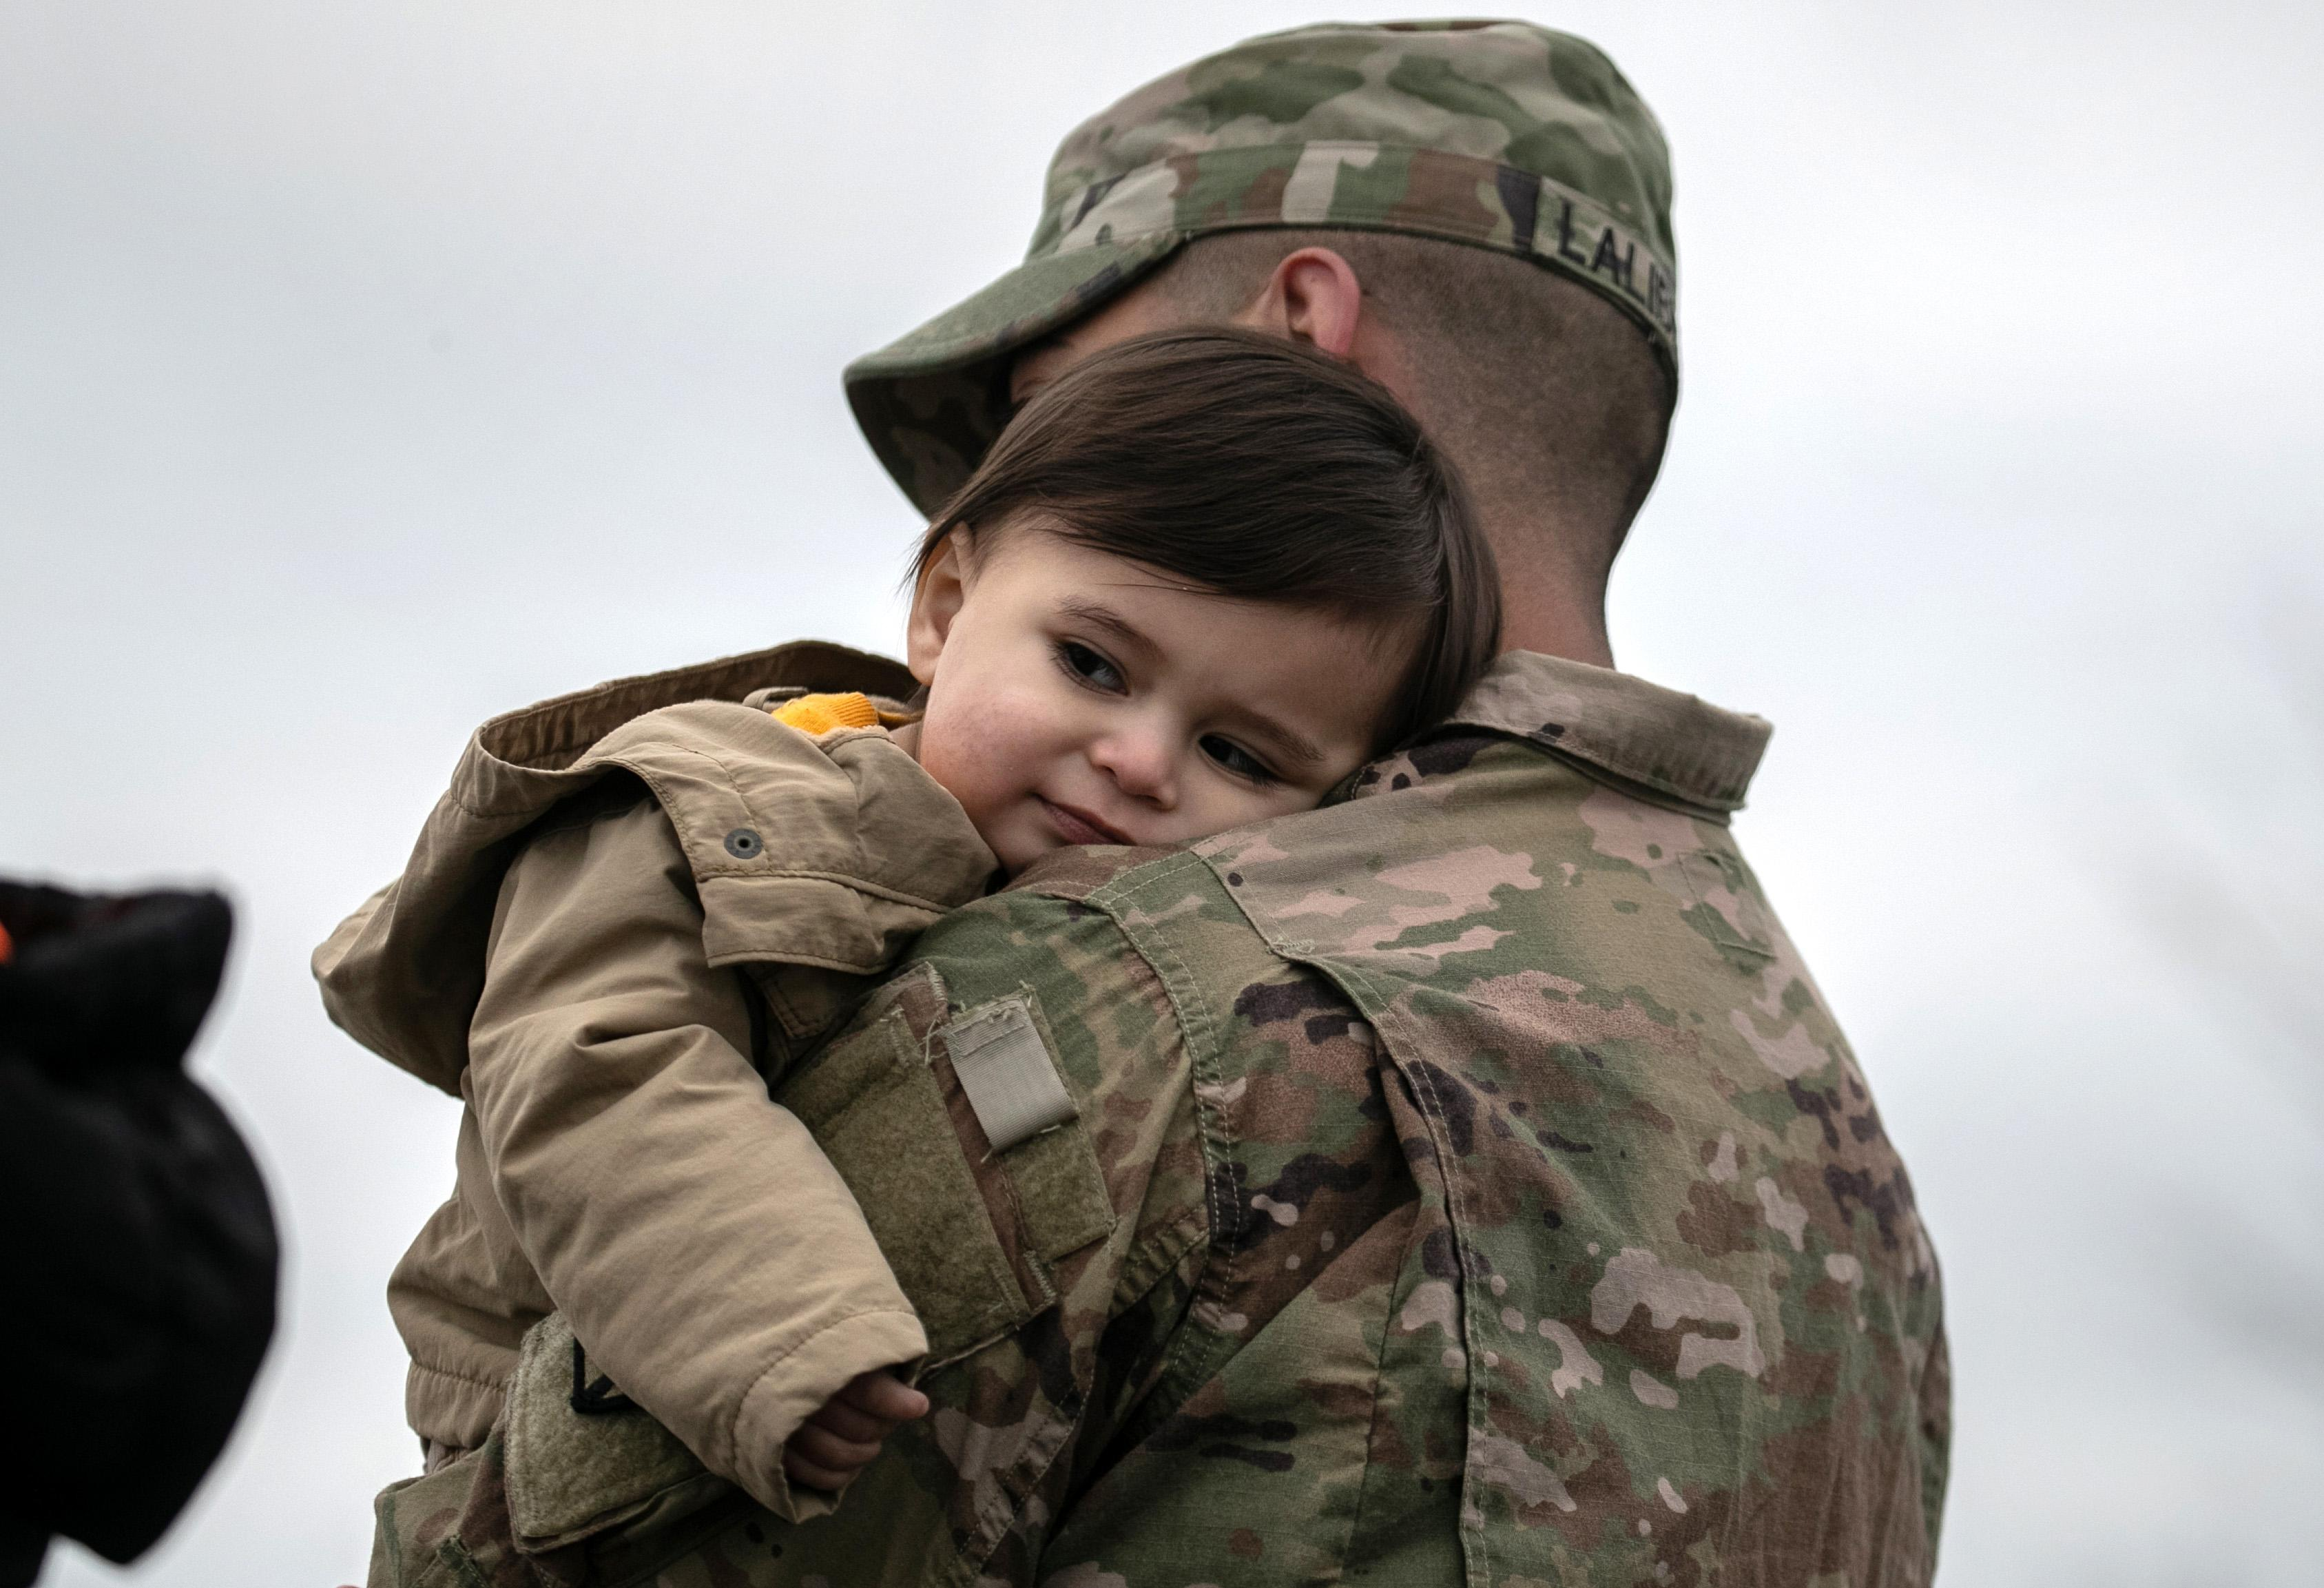 TSP funds for uniformed services members and federal employees